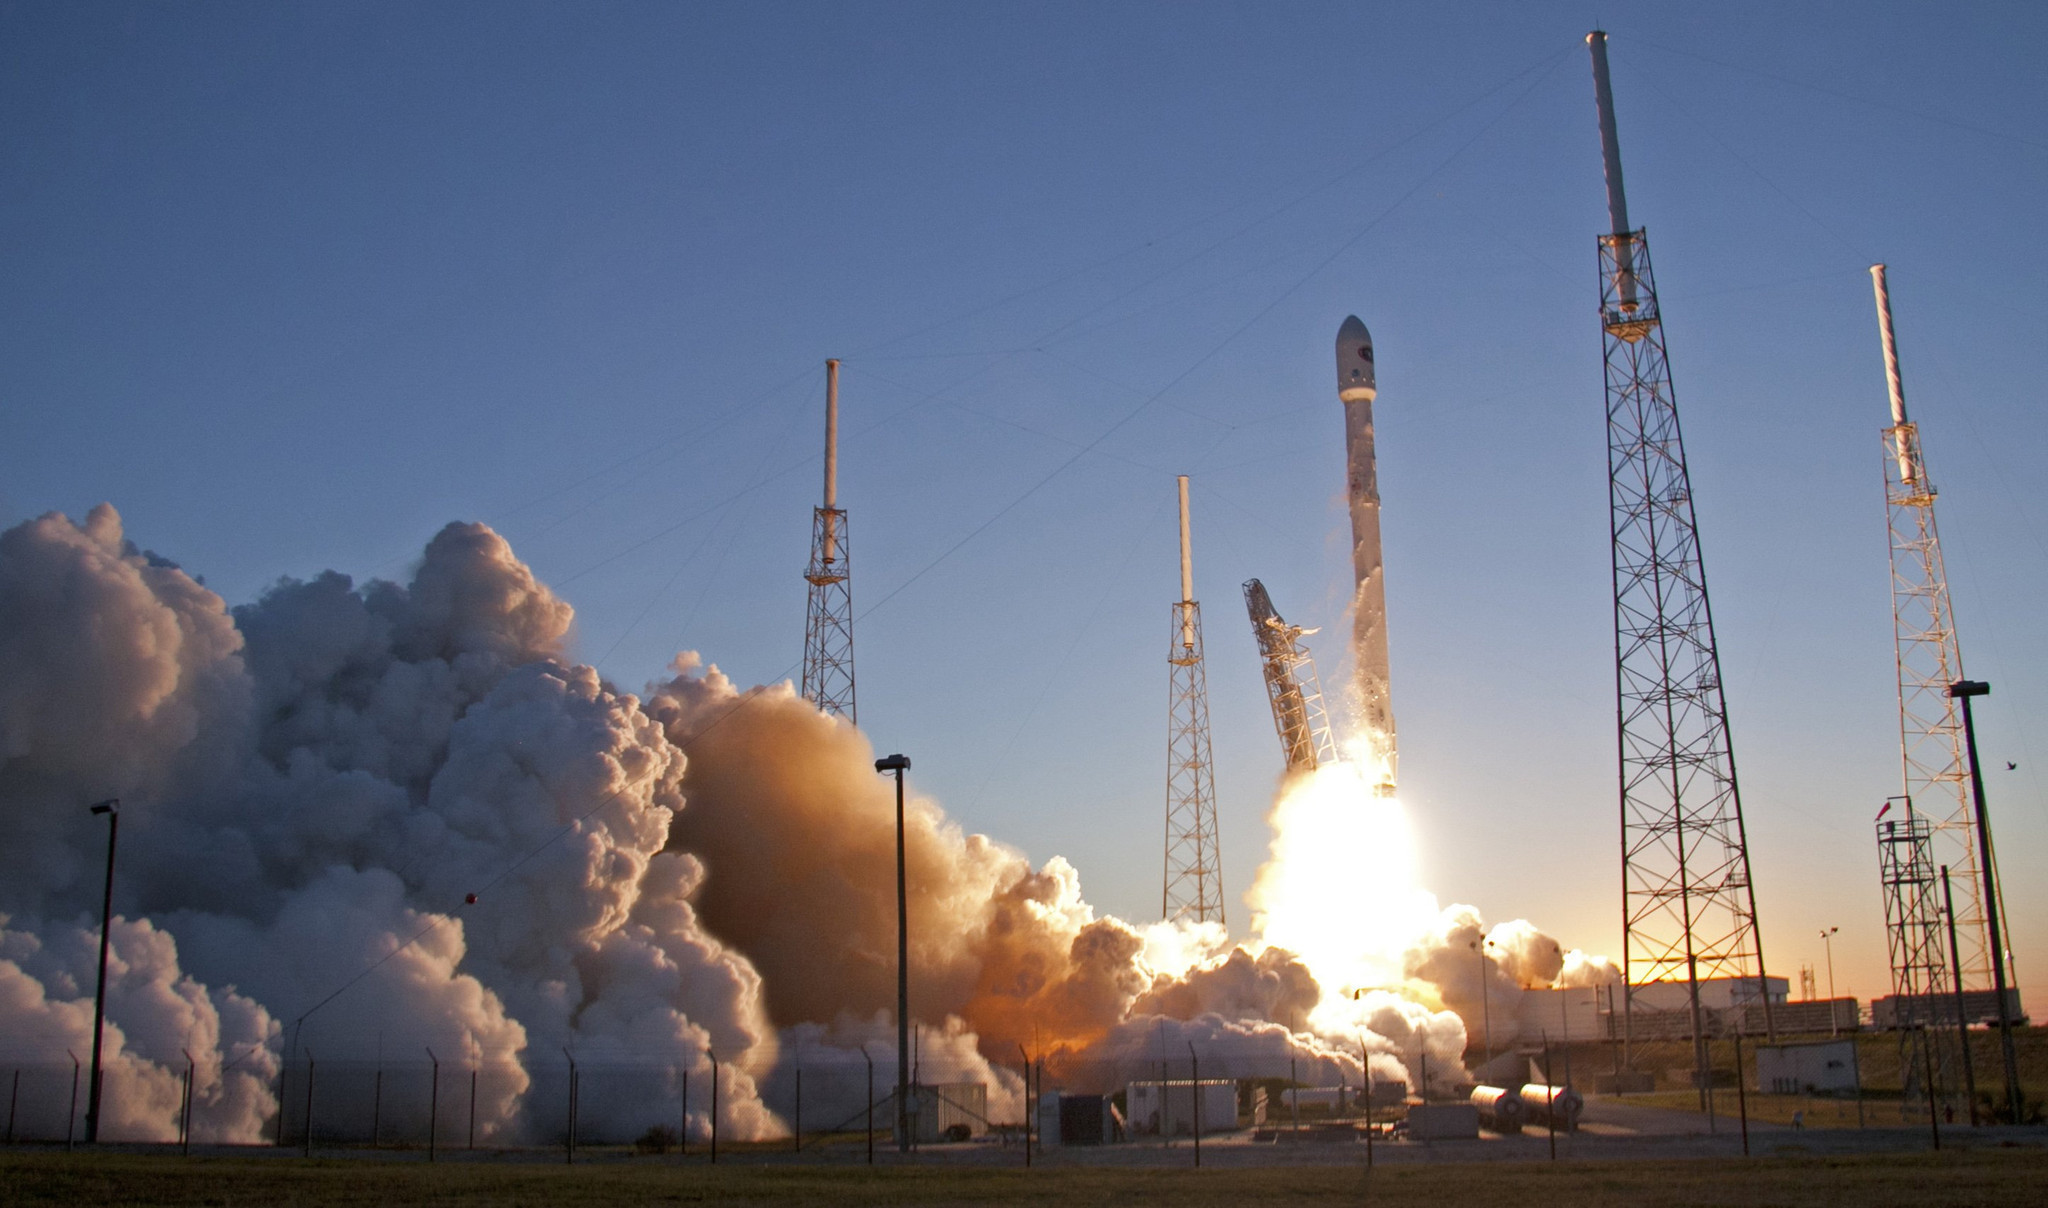 spacex - photo #43